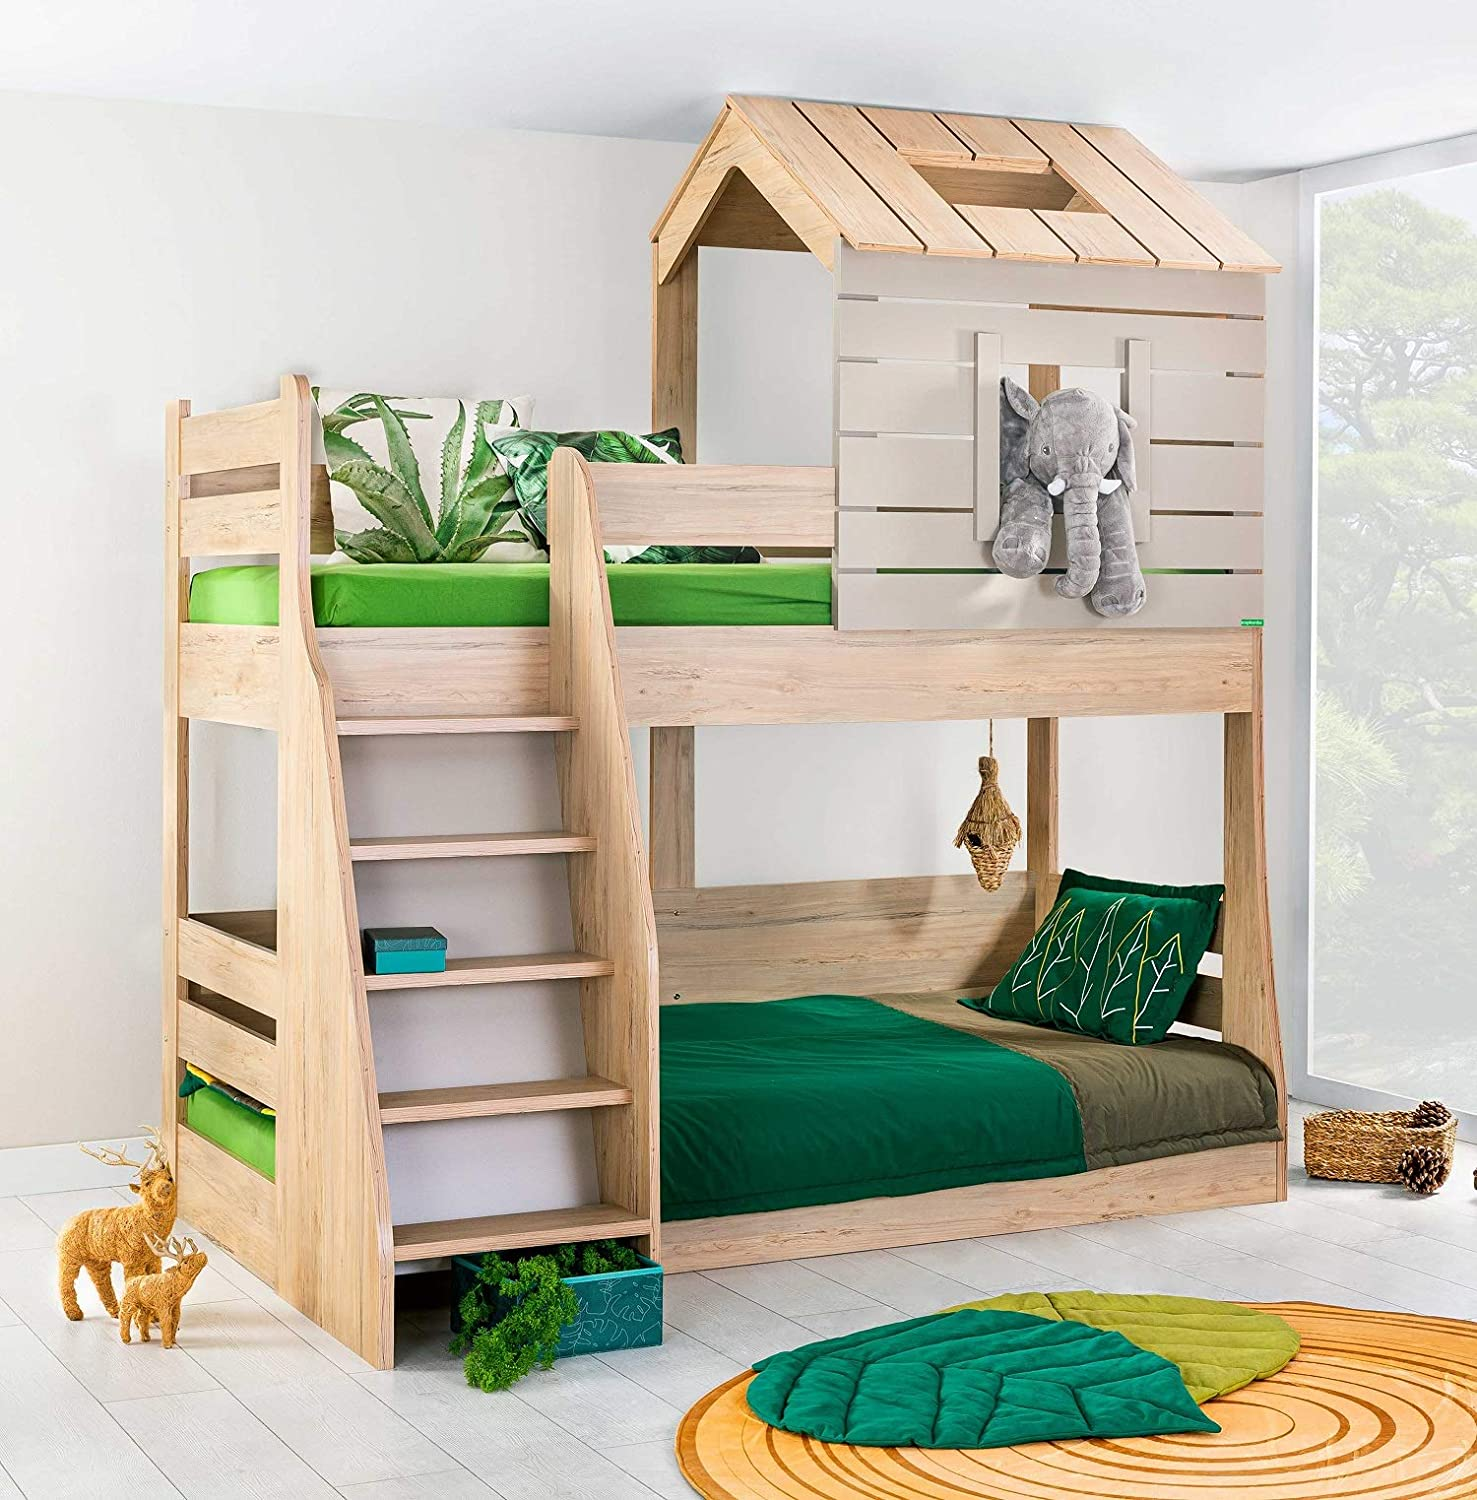 Kidomate My House Bunk Bed For Boys Girls Elegant Wood Finish Furniture That Suits Every Bedroom Amazon In Home Kitchen